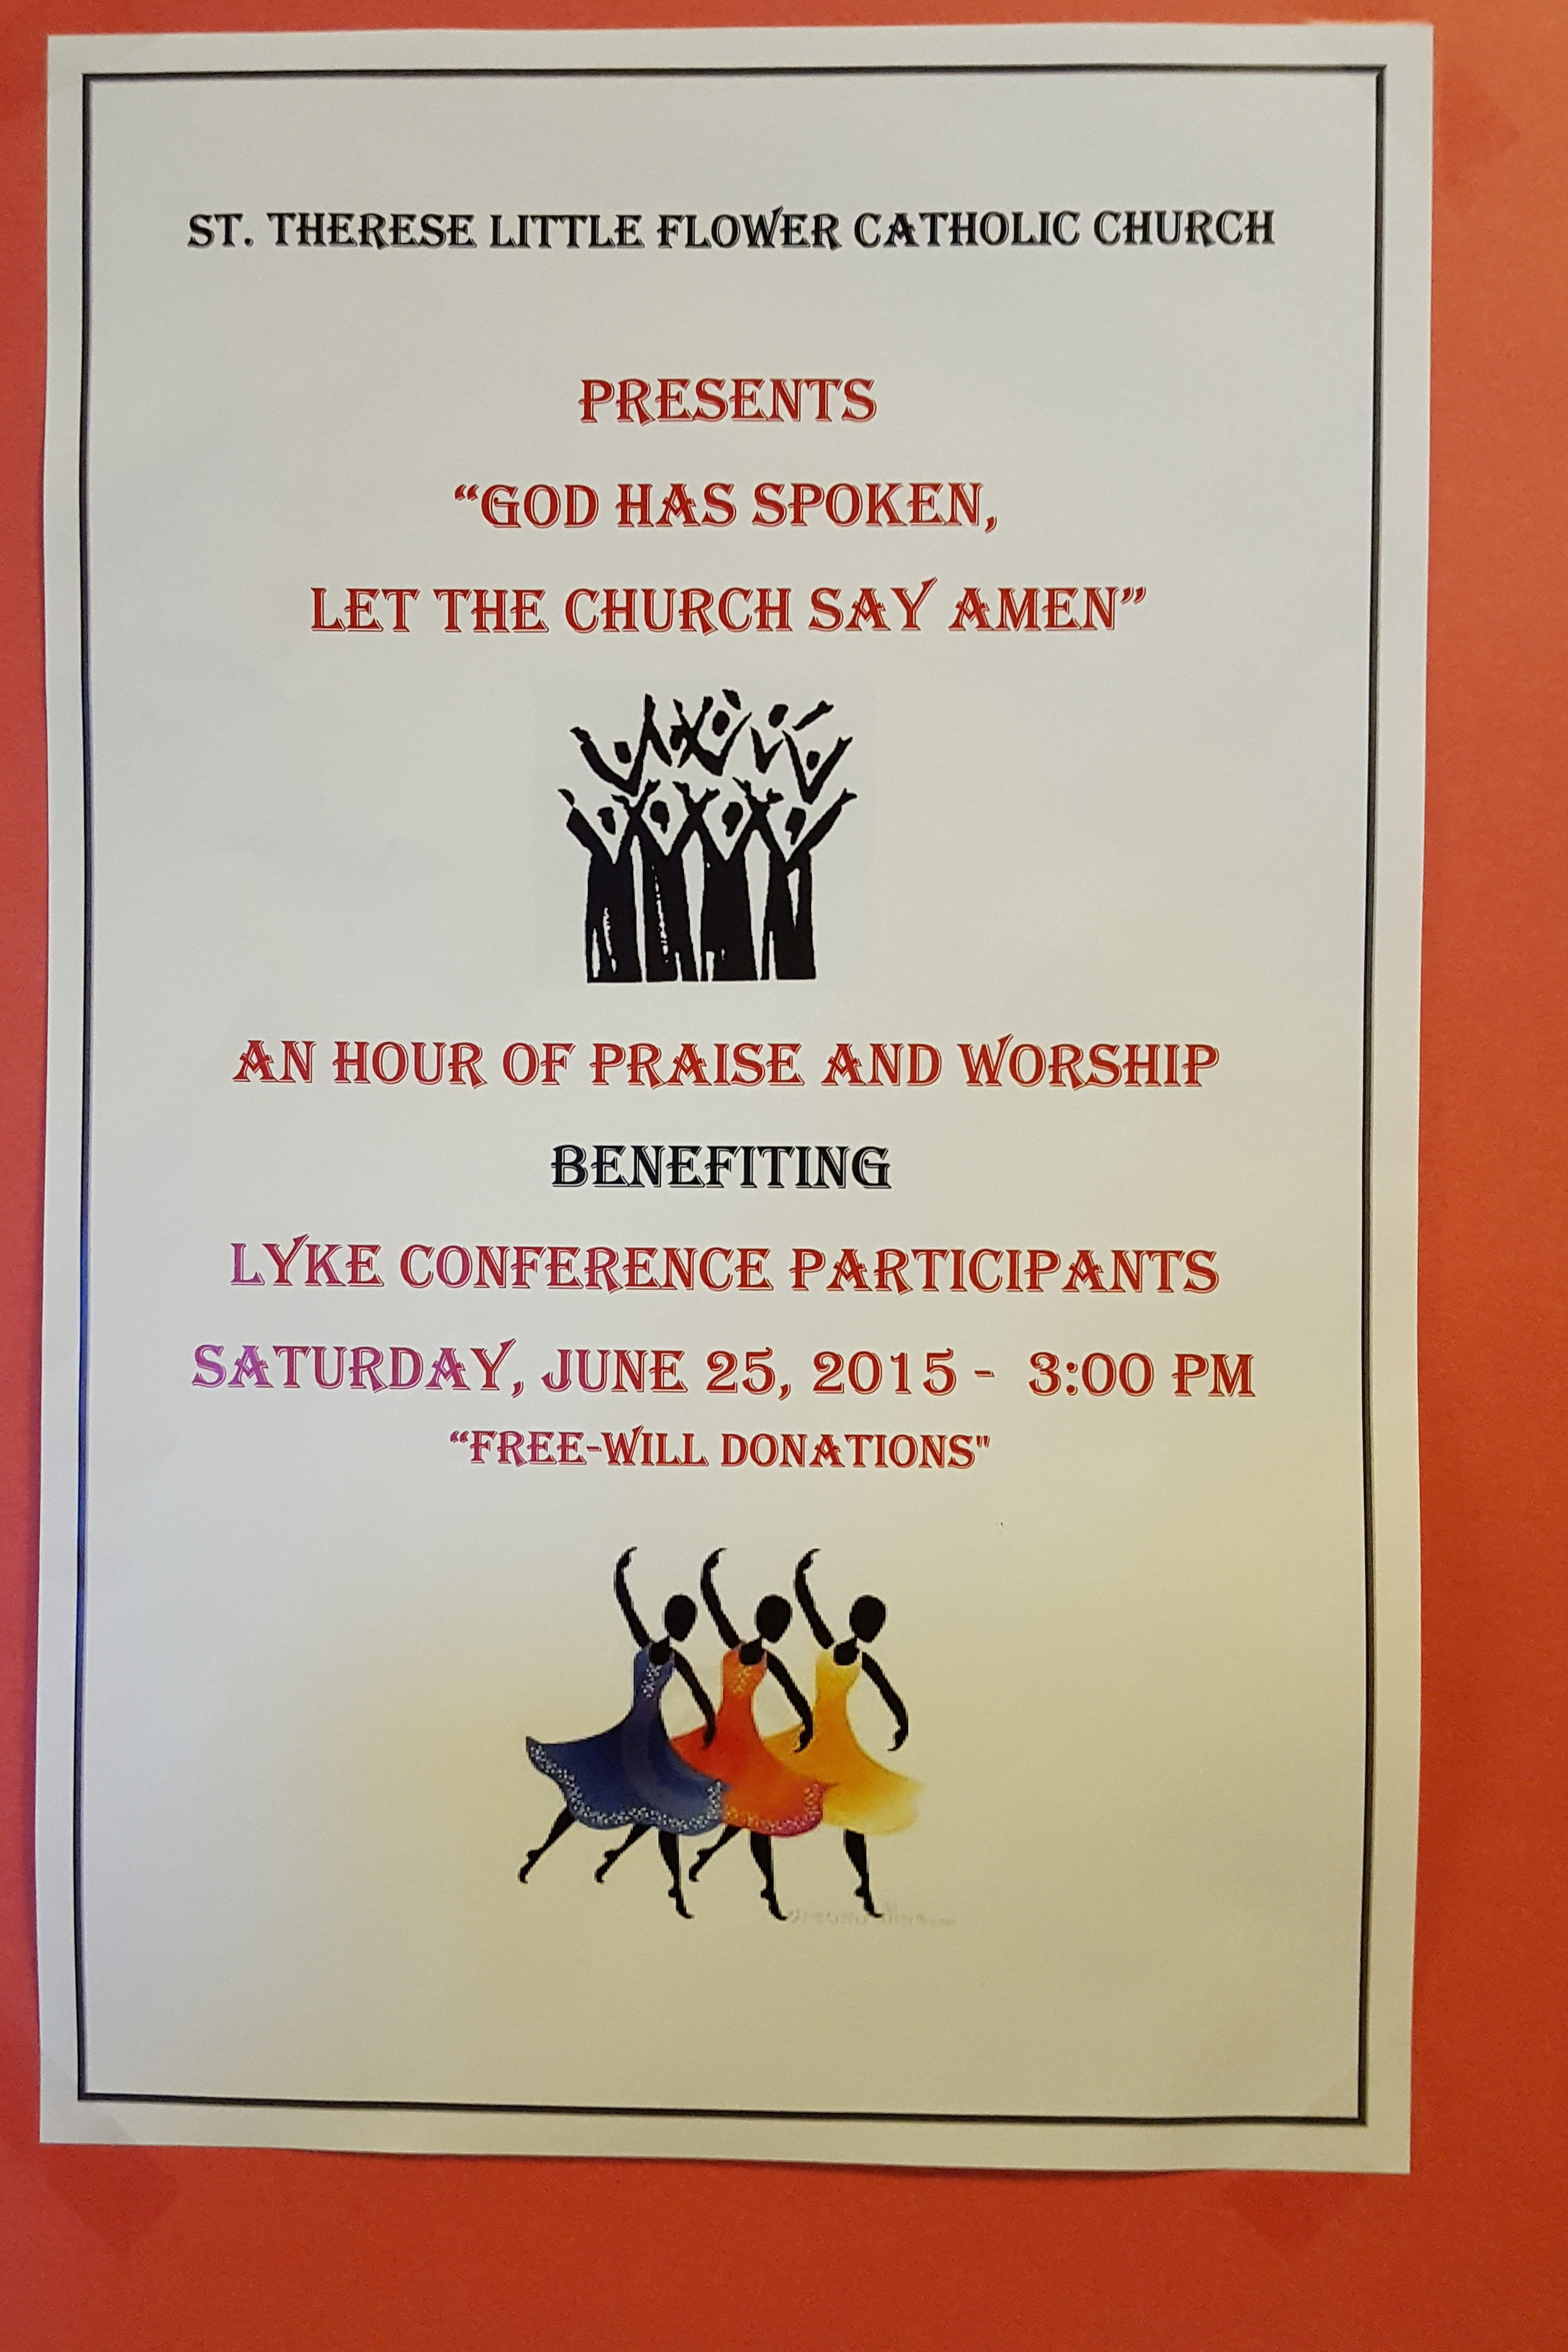 st therese lyke conference fundraiser 4 - Copy